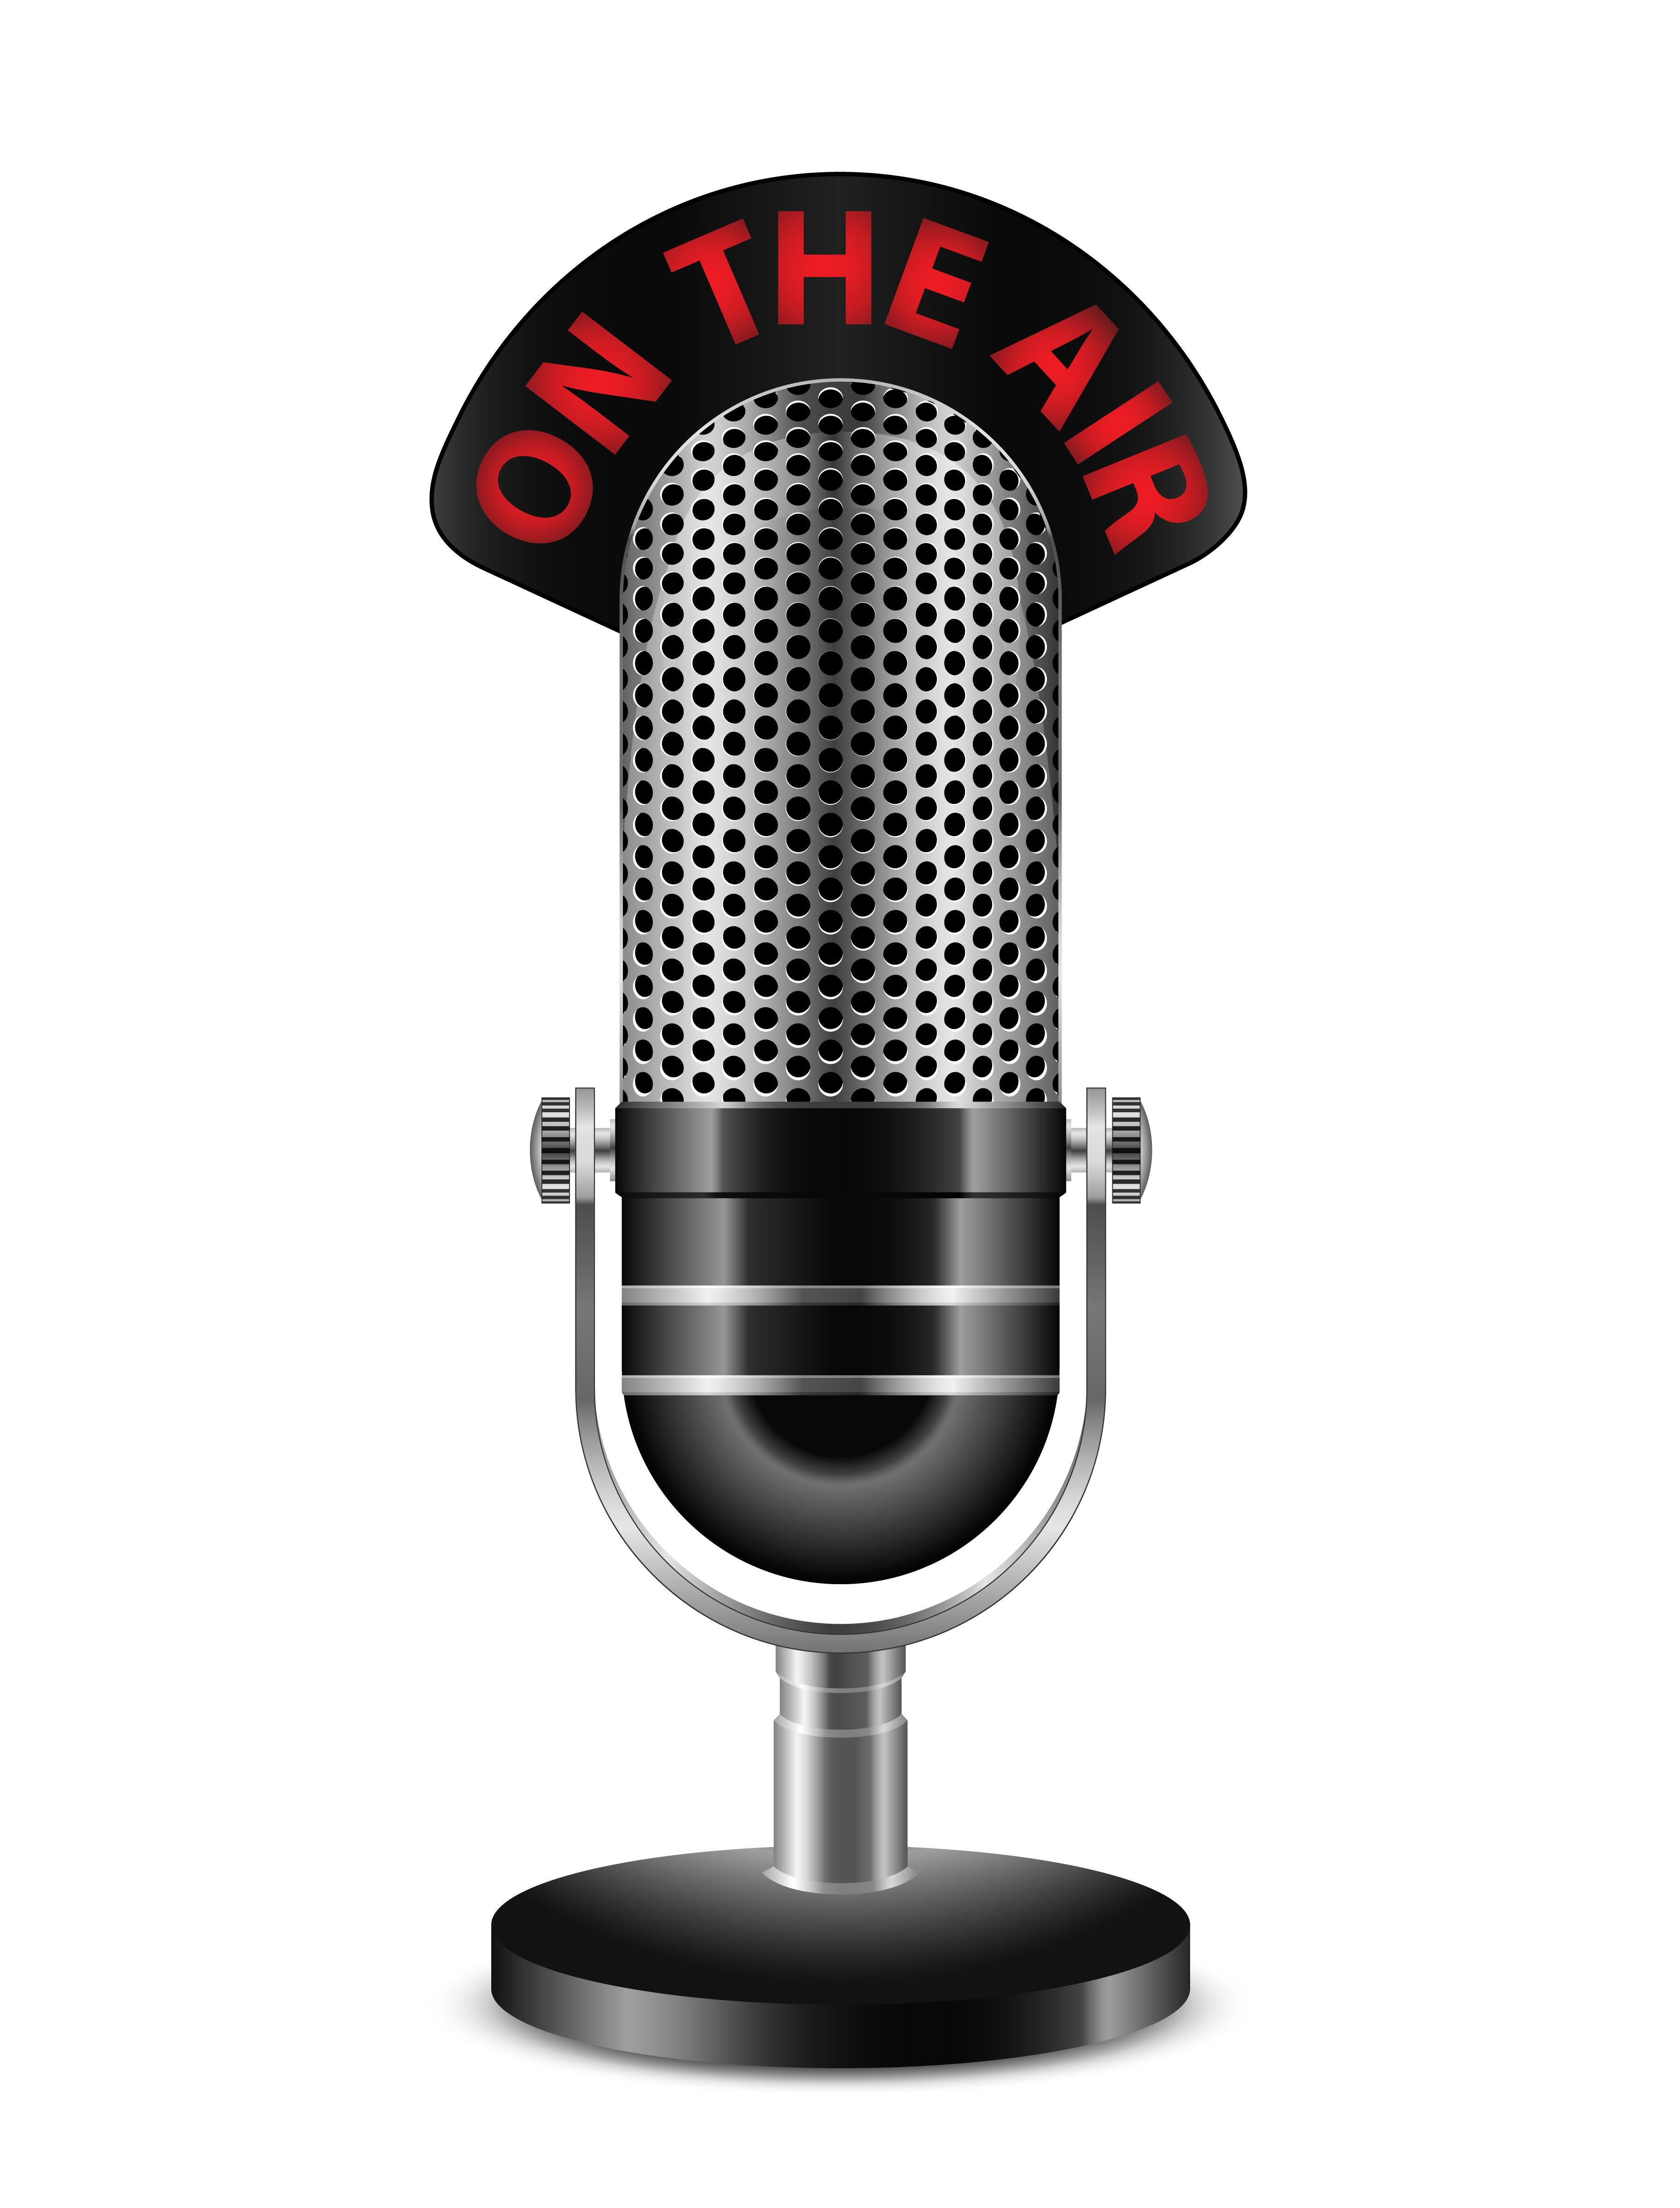 Radio Microphone Png Microphone Illustration Artwork Drawing Stock Images